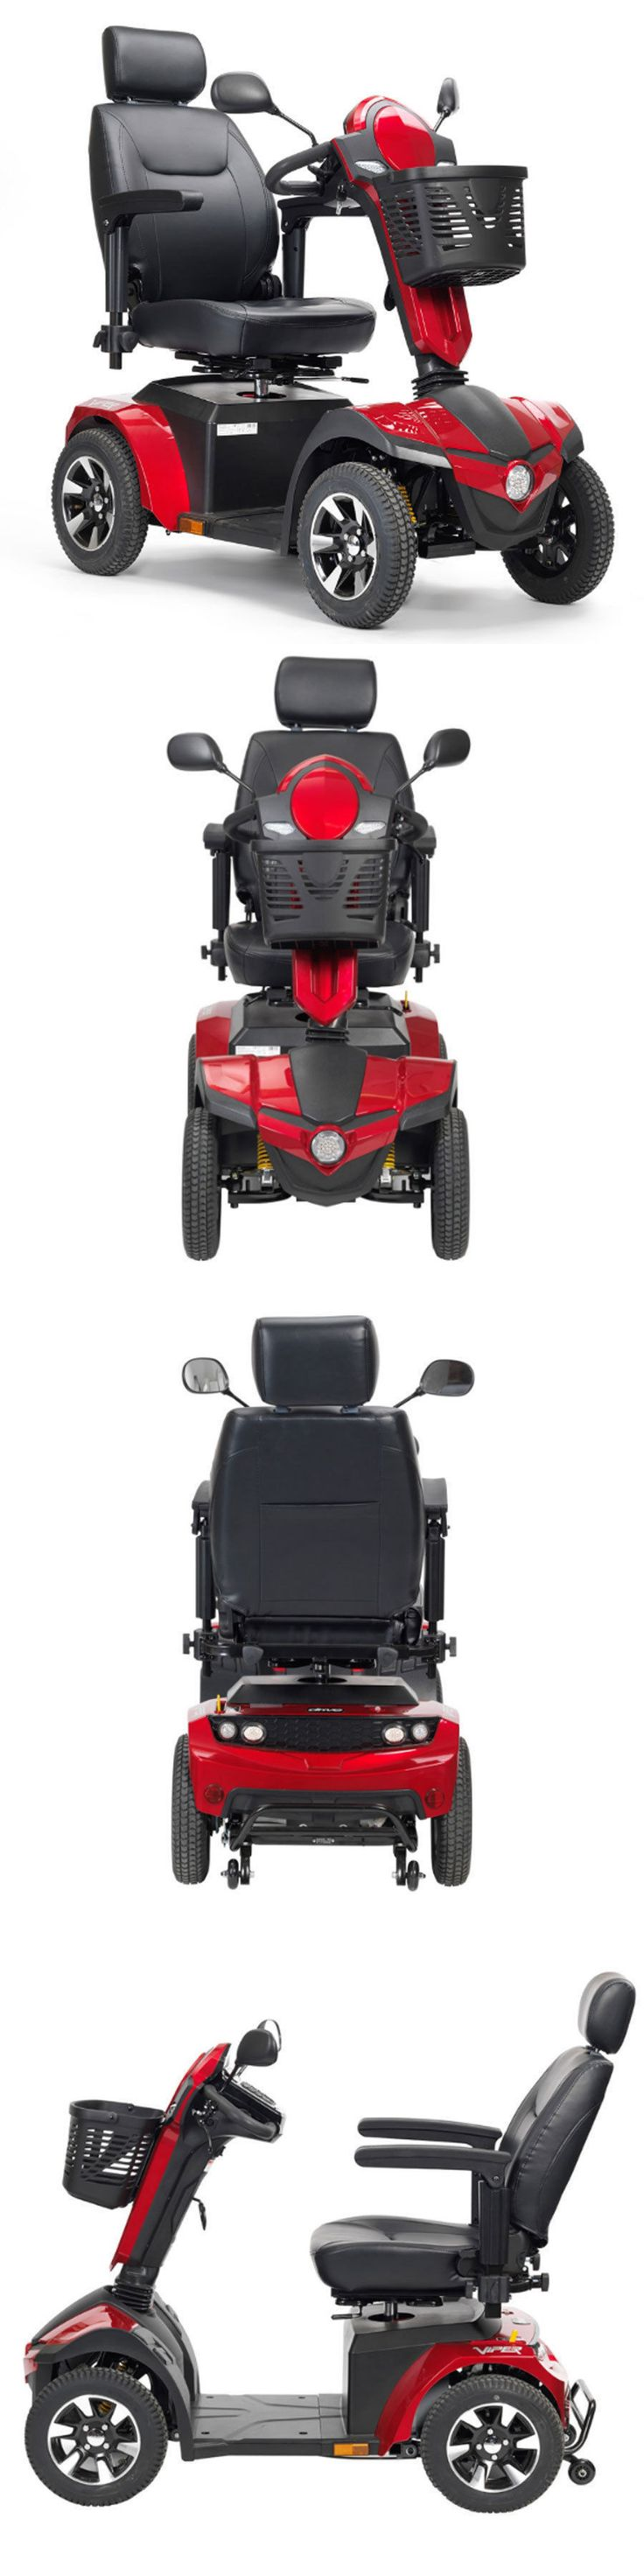 Mobility Scooters: Drive Medical Panther 4 Wheel Heavy Duty All Terrain Mobility Scooter 425Lb Cap -> BUY IT NOW ONLY: $2499.0 on eBay!